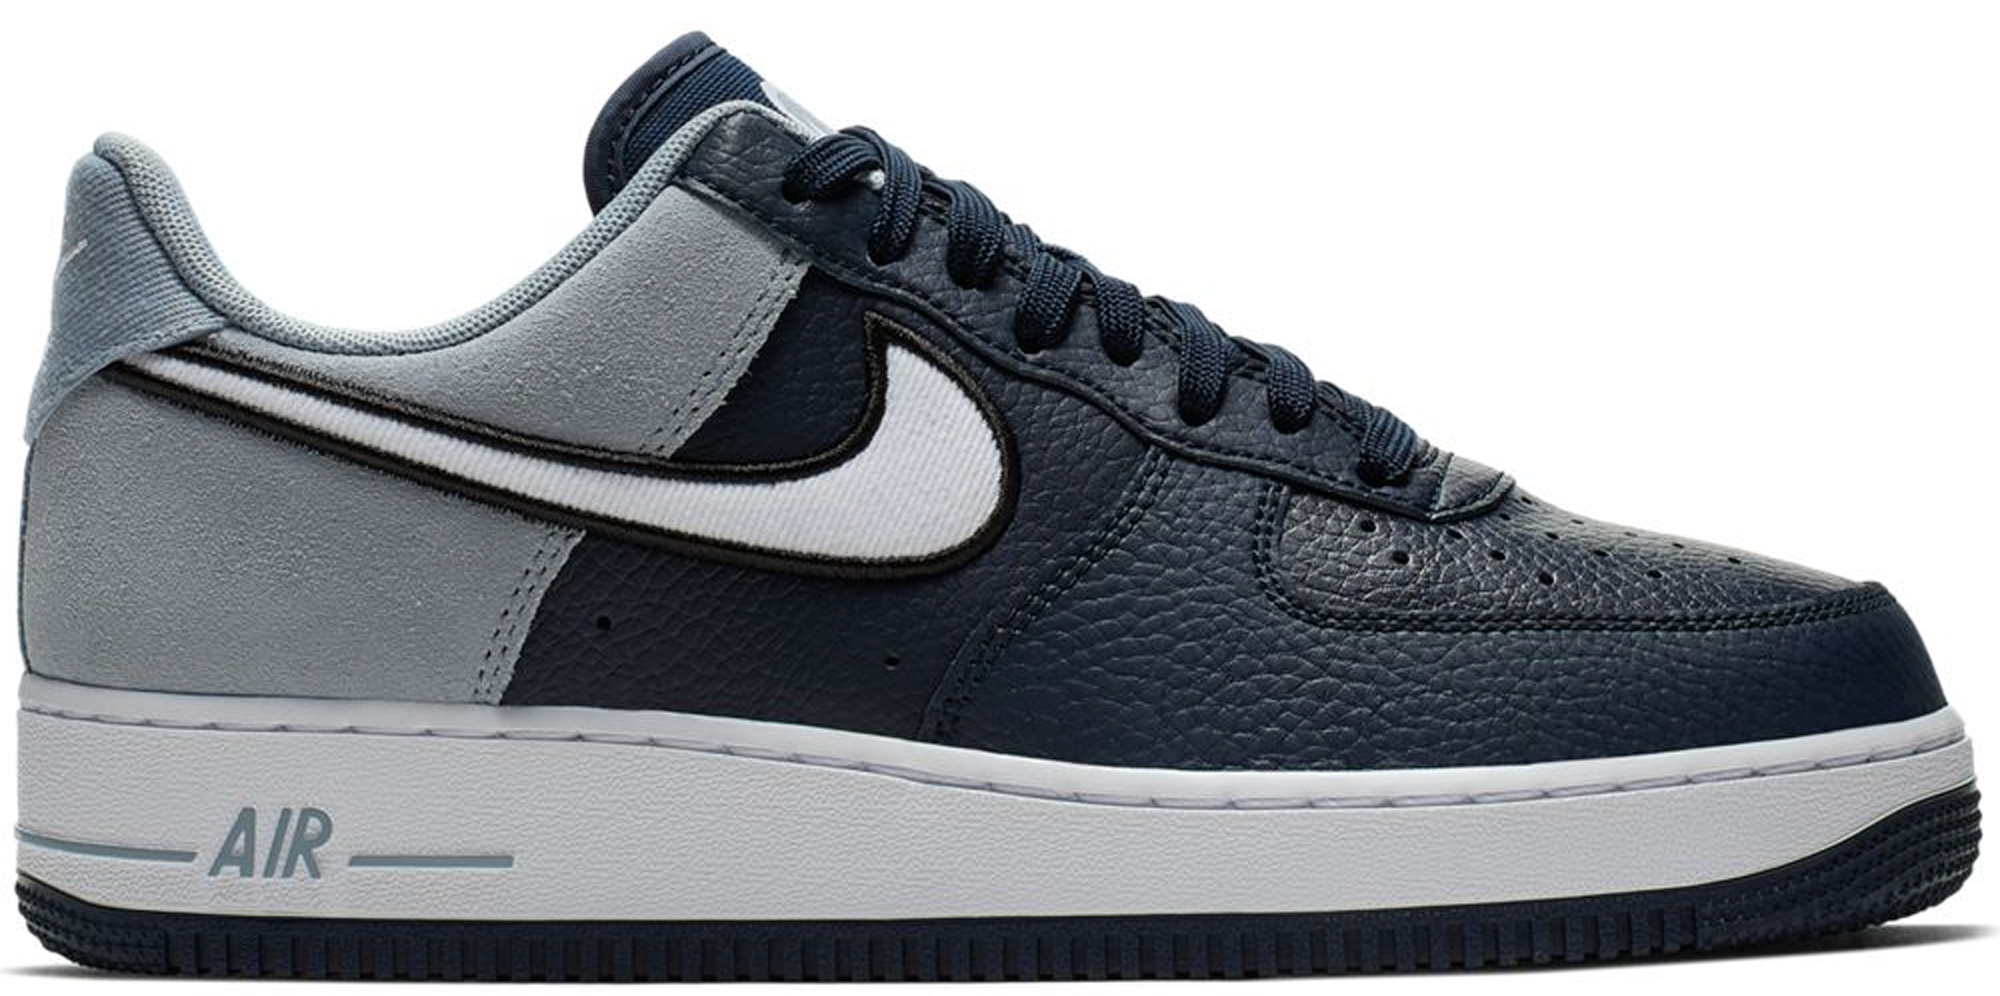 Nike Air Force 1 Low Obsidian White Obsidian Mist Nike Shoes